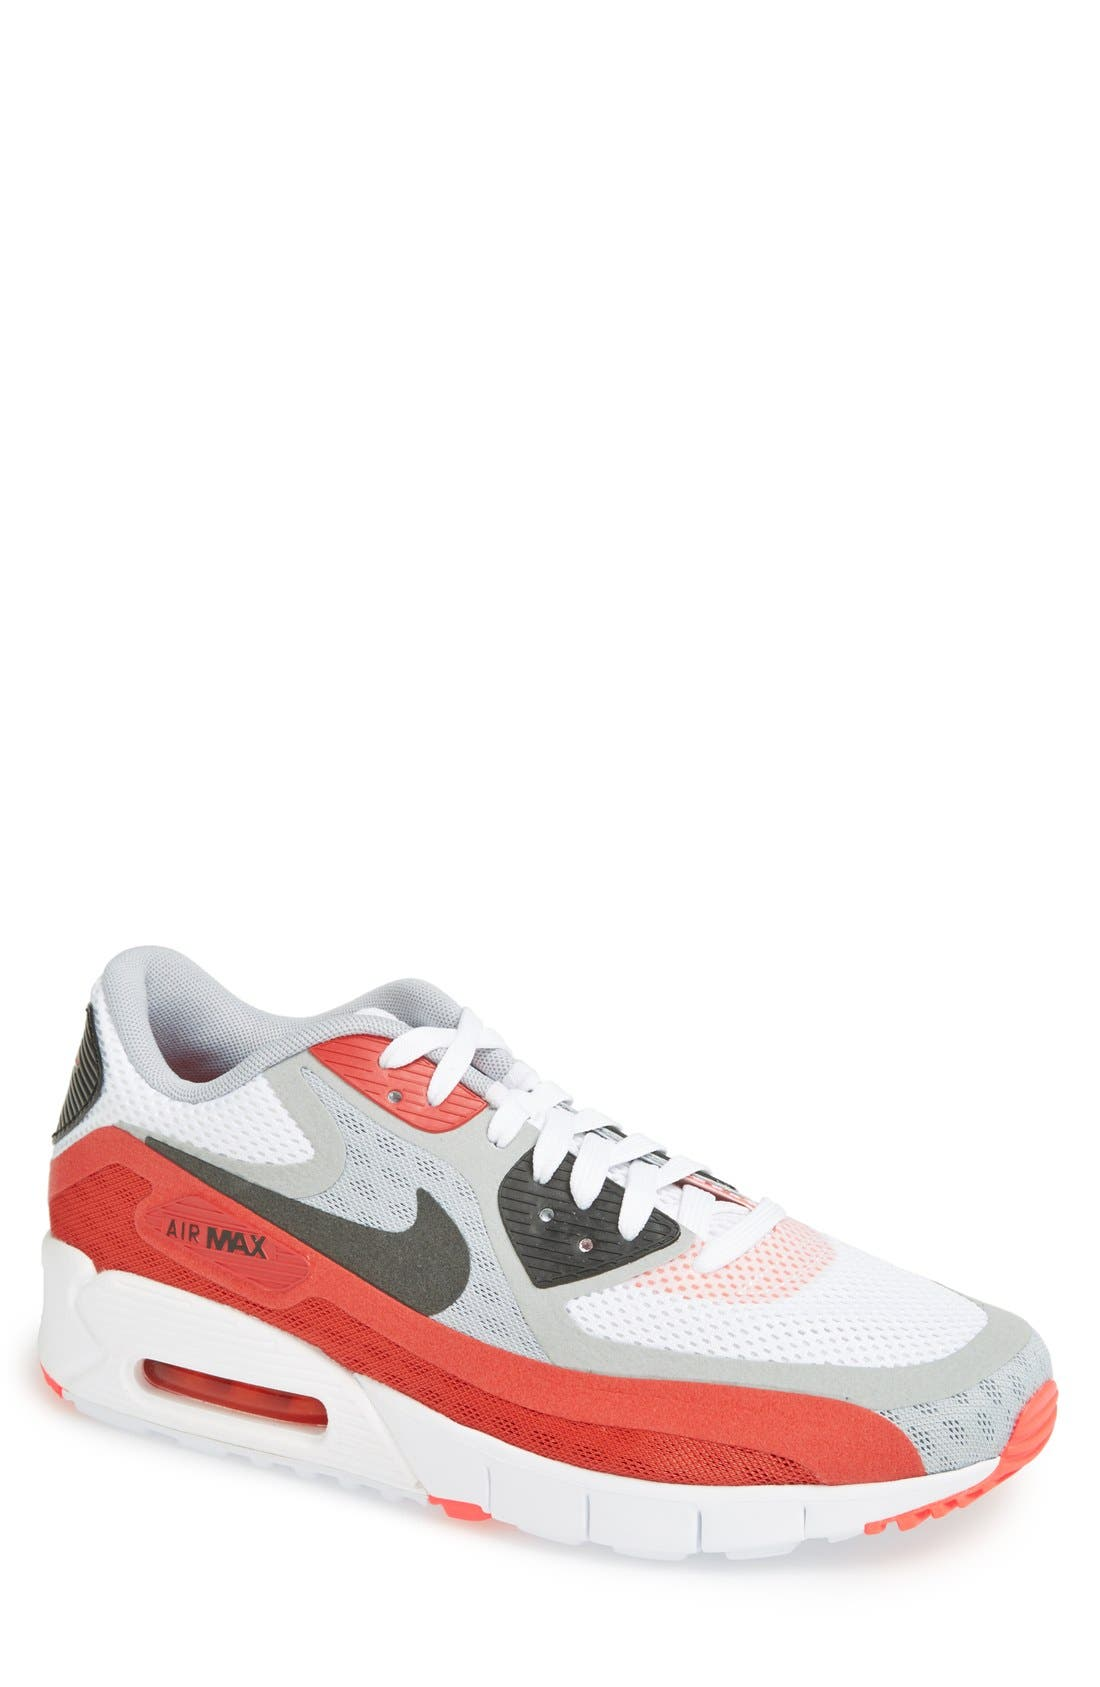 Alternate Image 1 Selected - Nike 'Air Max 90 Breeze' Sneaker (Men)